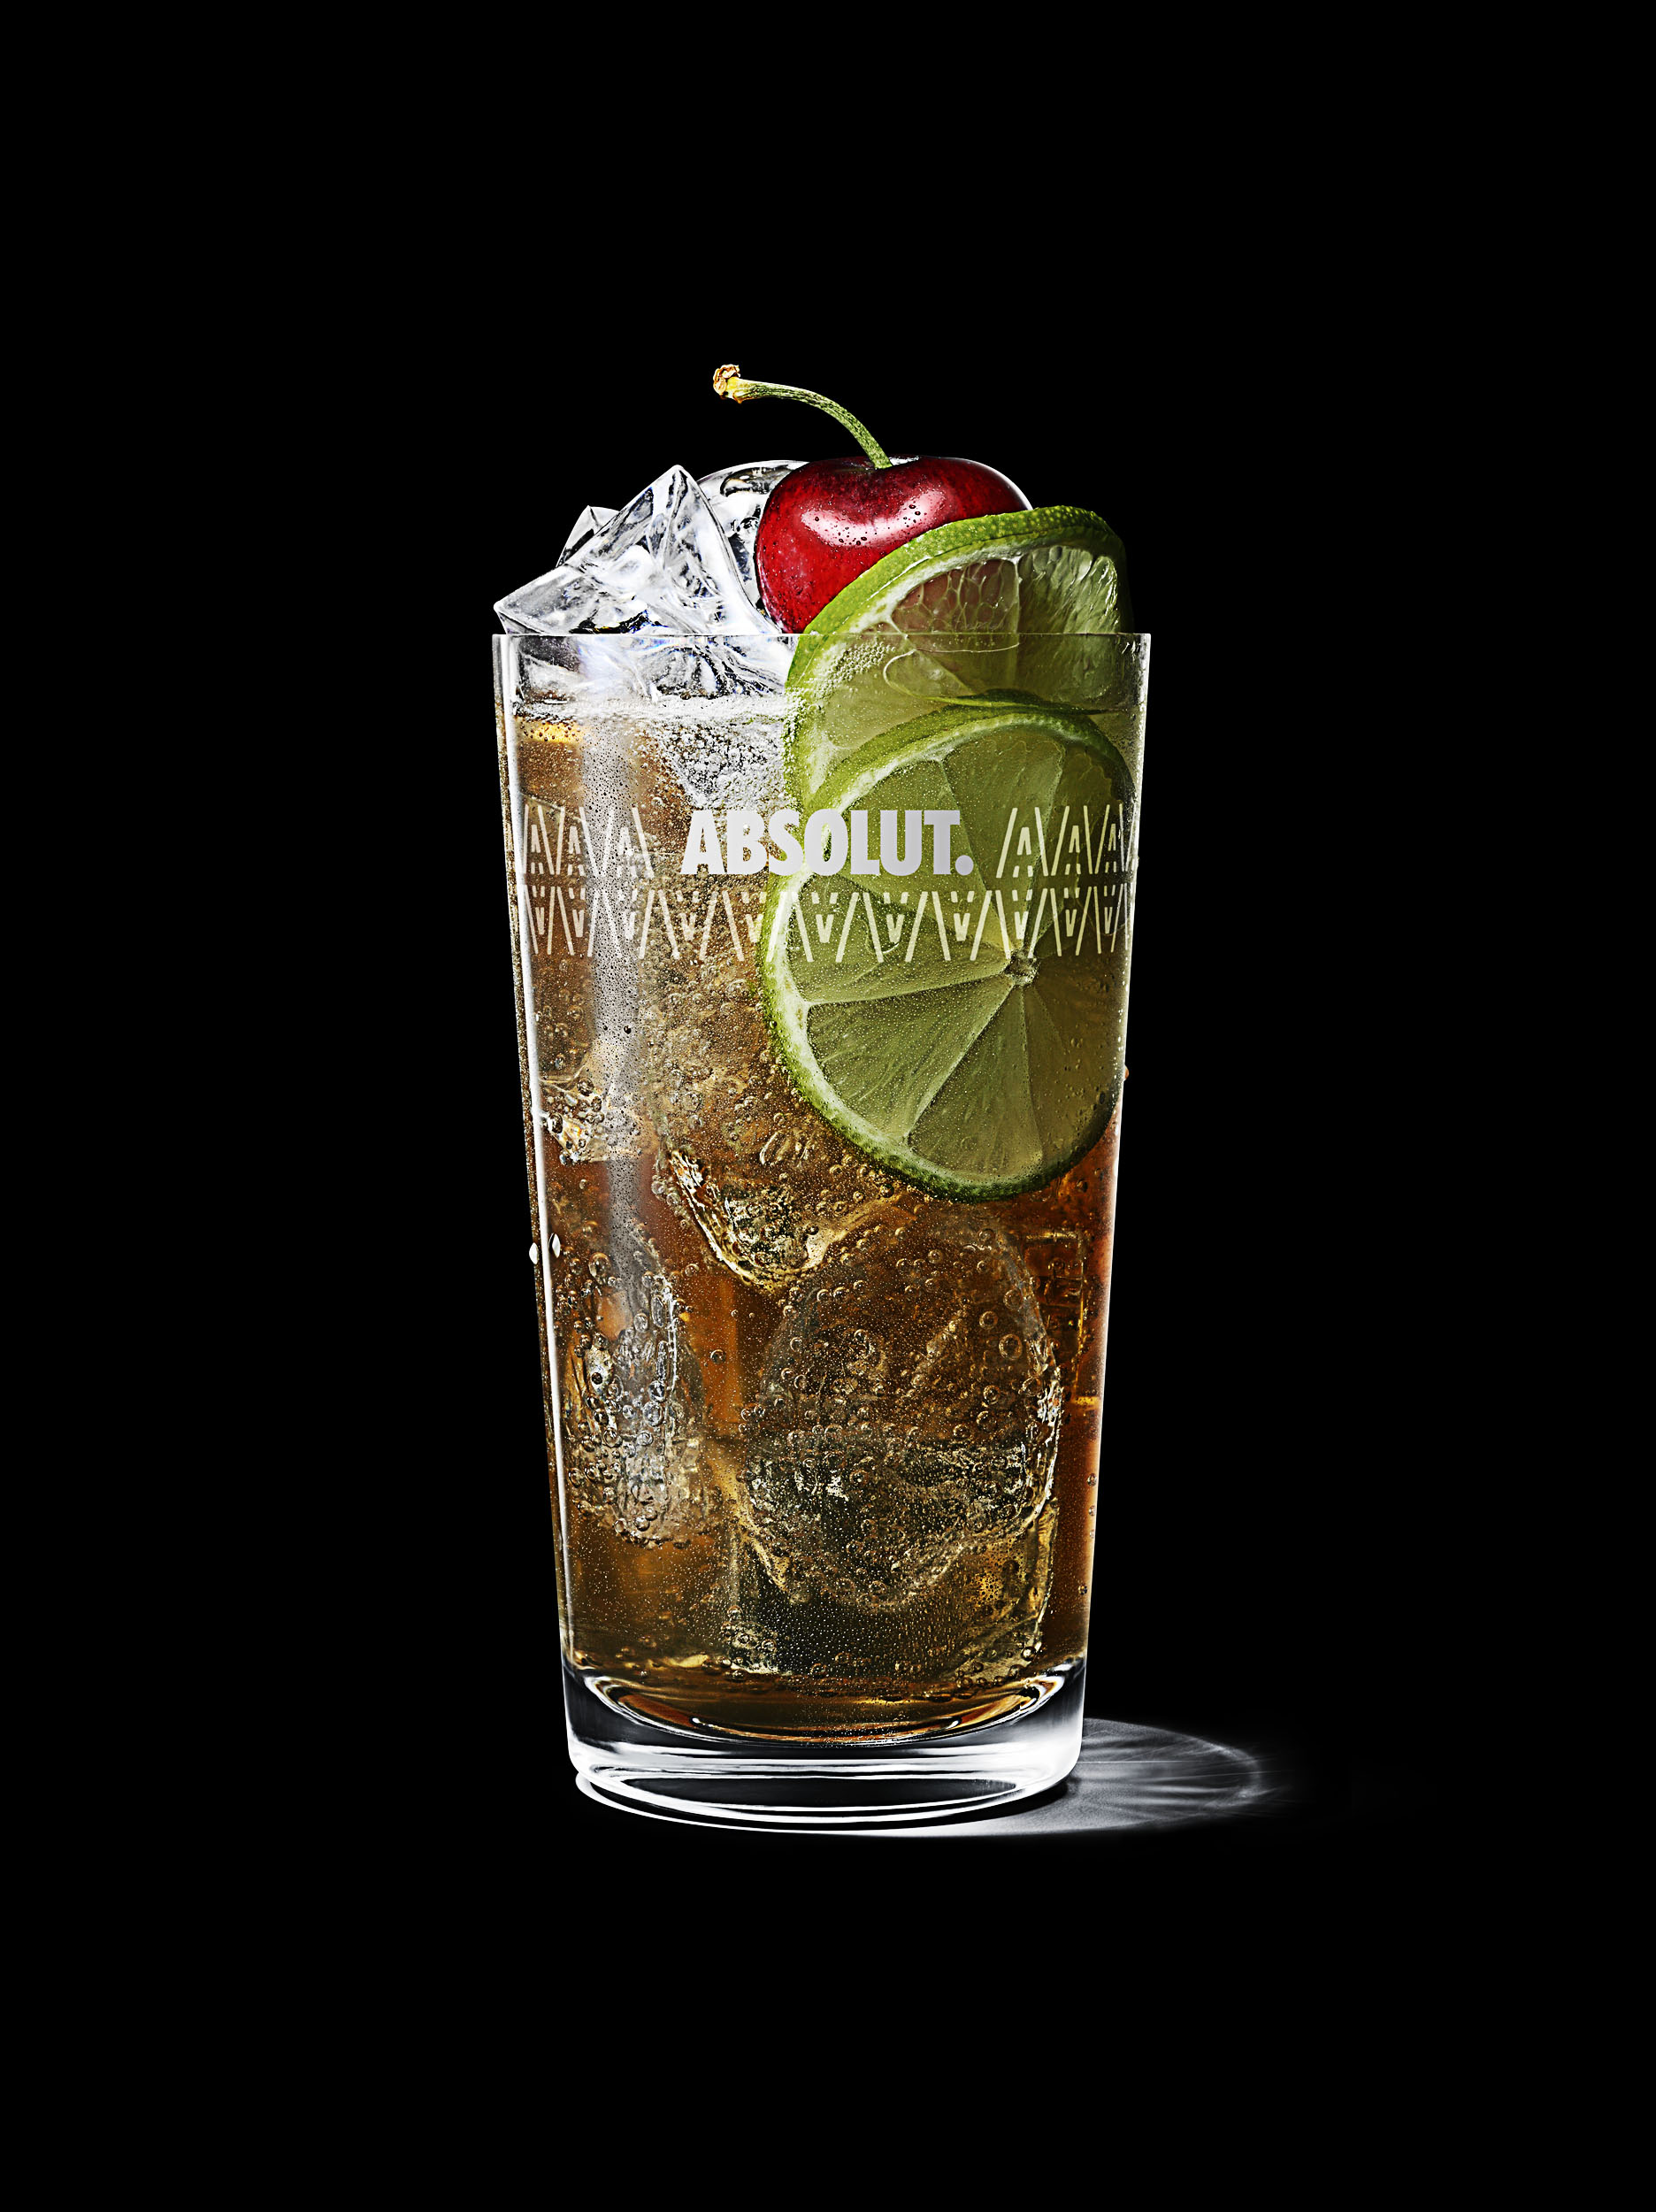 jensmortensen-absolut-vodka-7418ee38